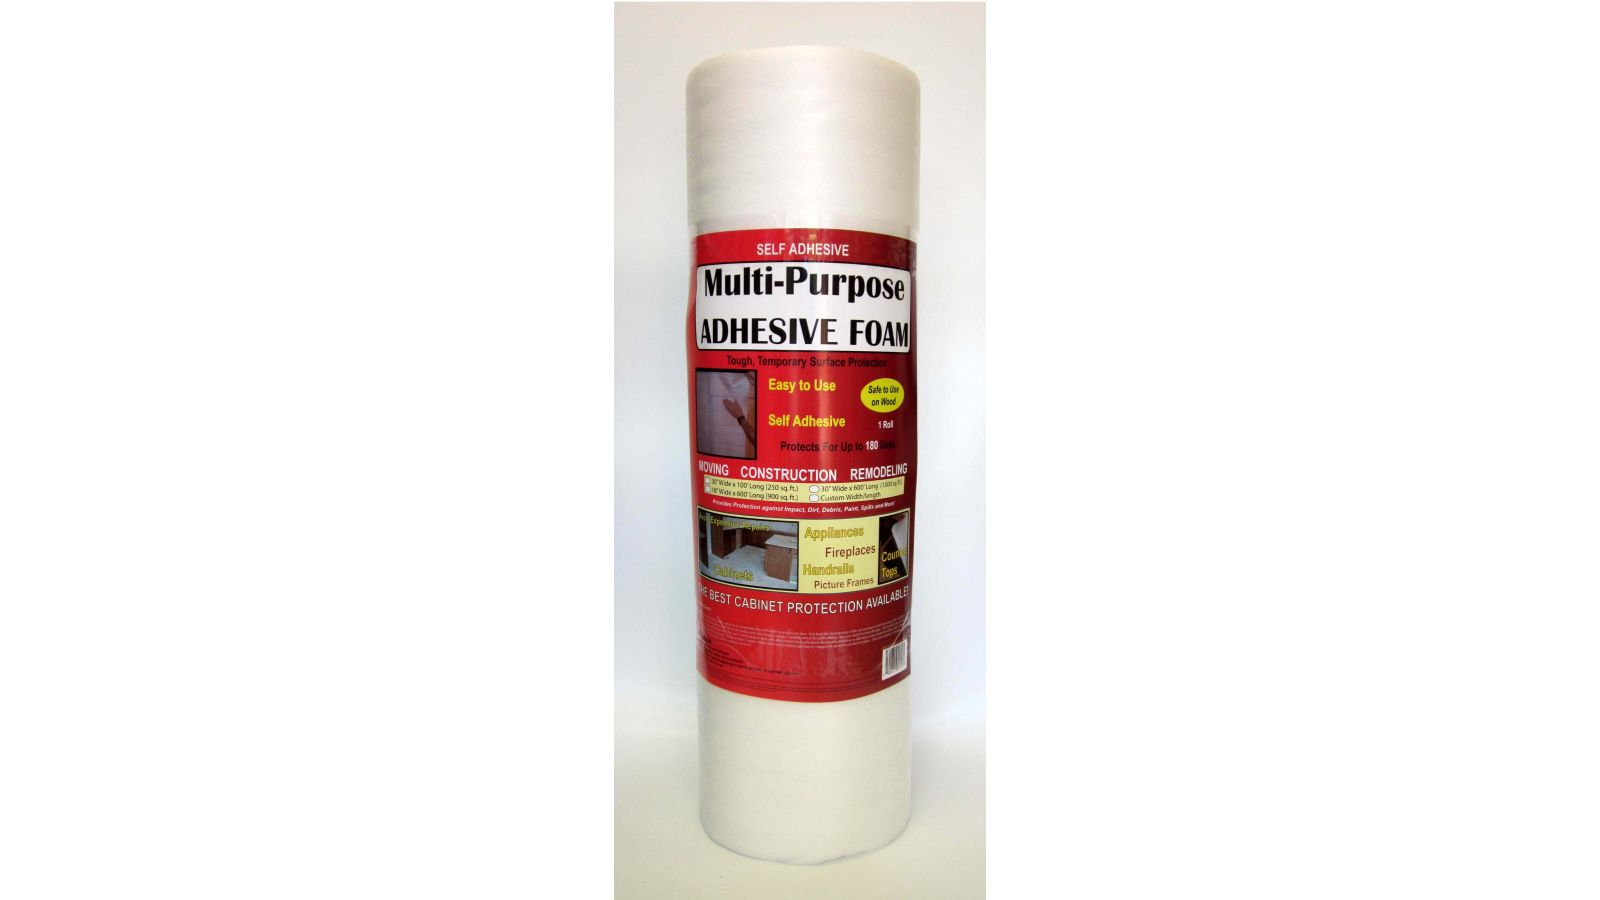 Protecta-foam multipurpose surface protection